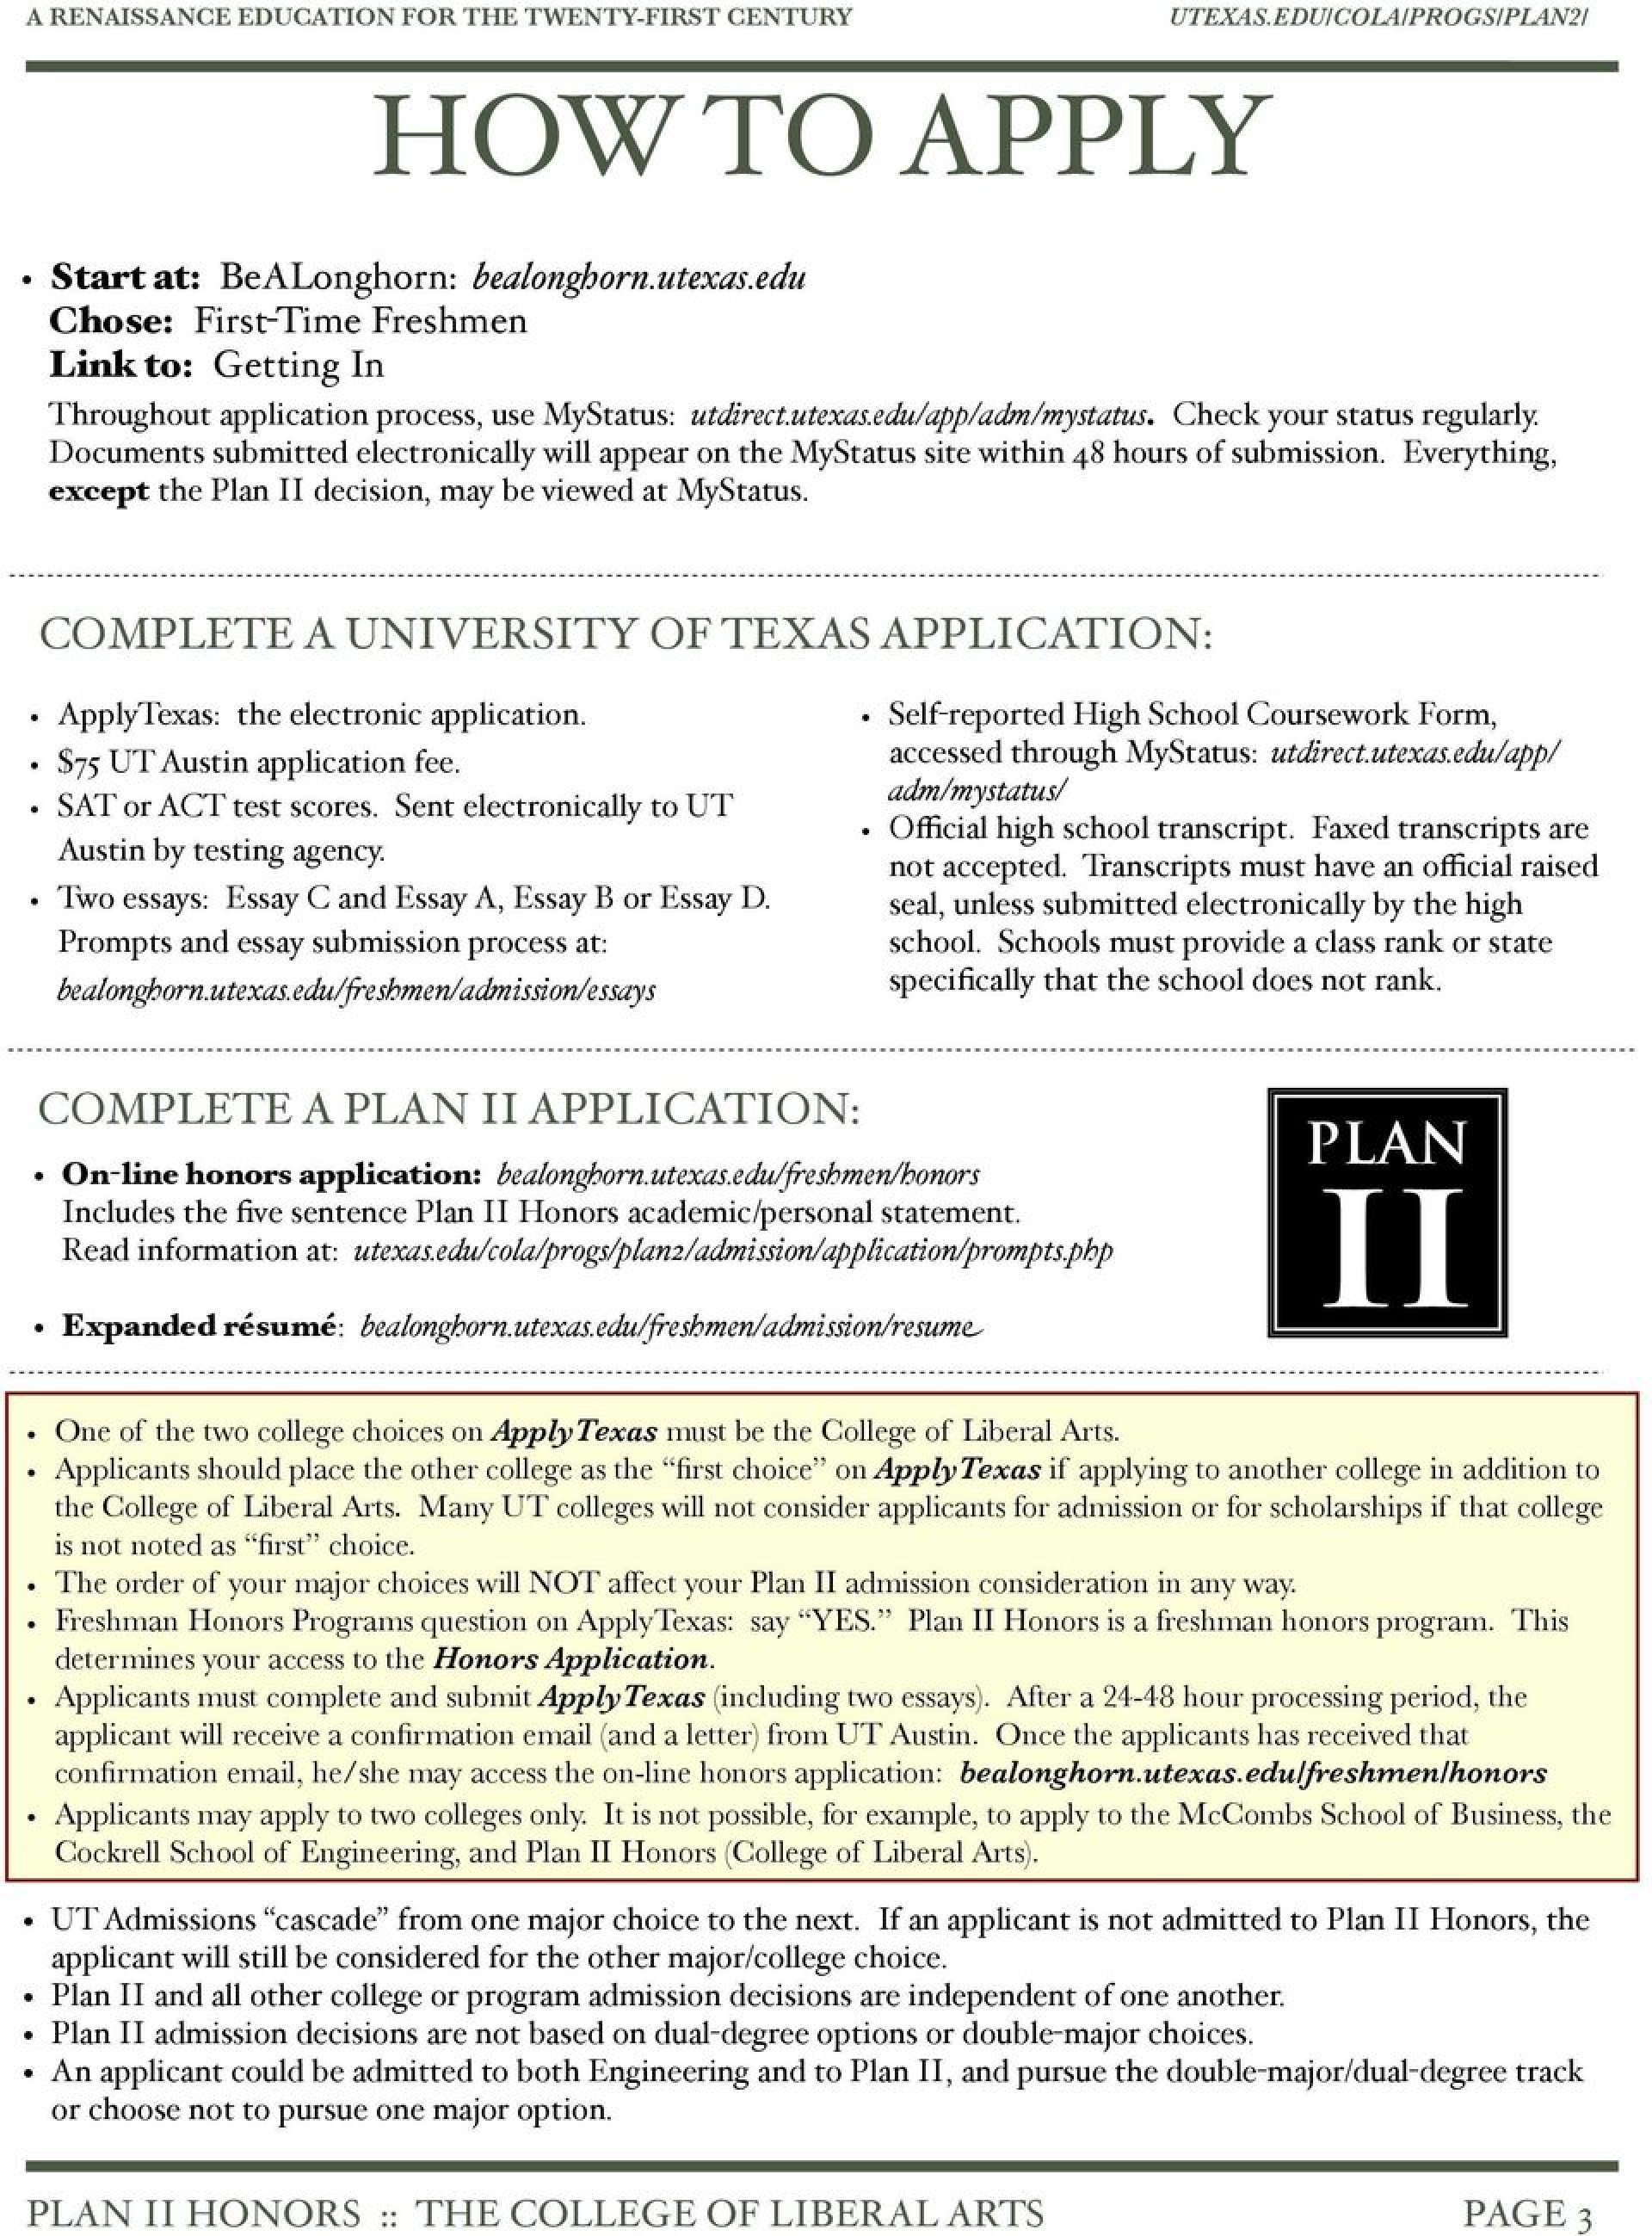 011 Page New Apply Texas Essays Topics Archaicawful Essay Application Fall 2018 Prompt C Example 1920